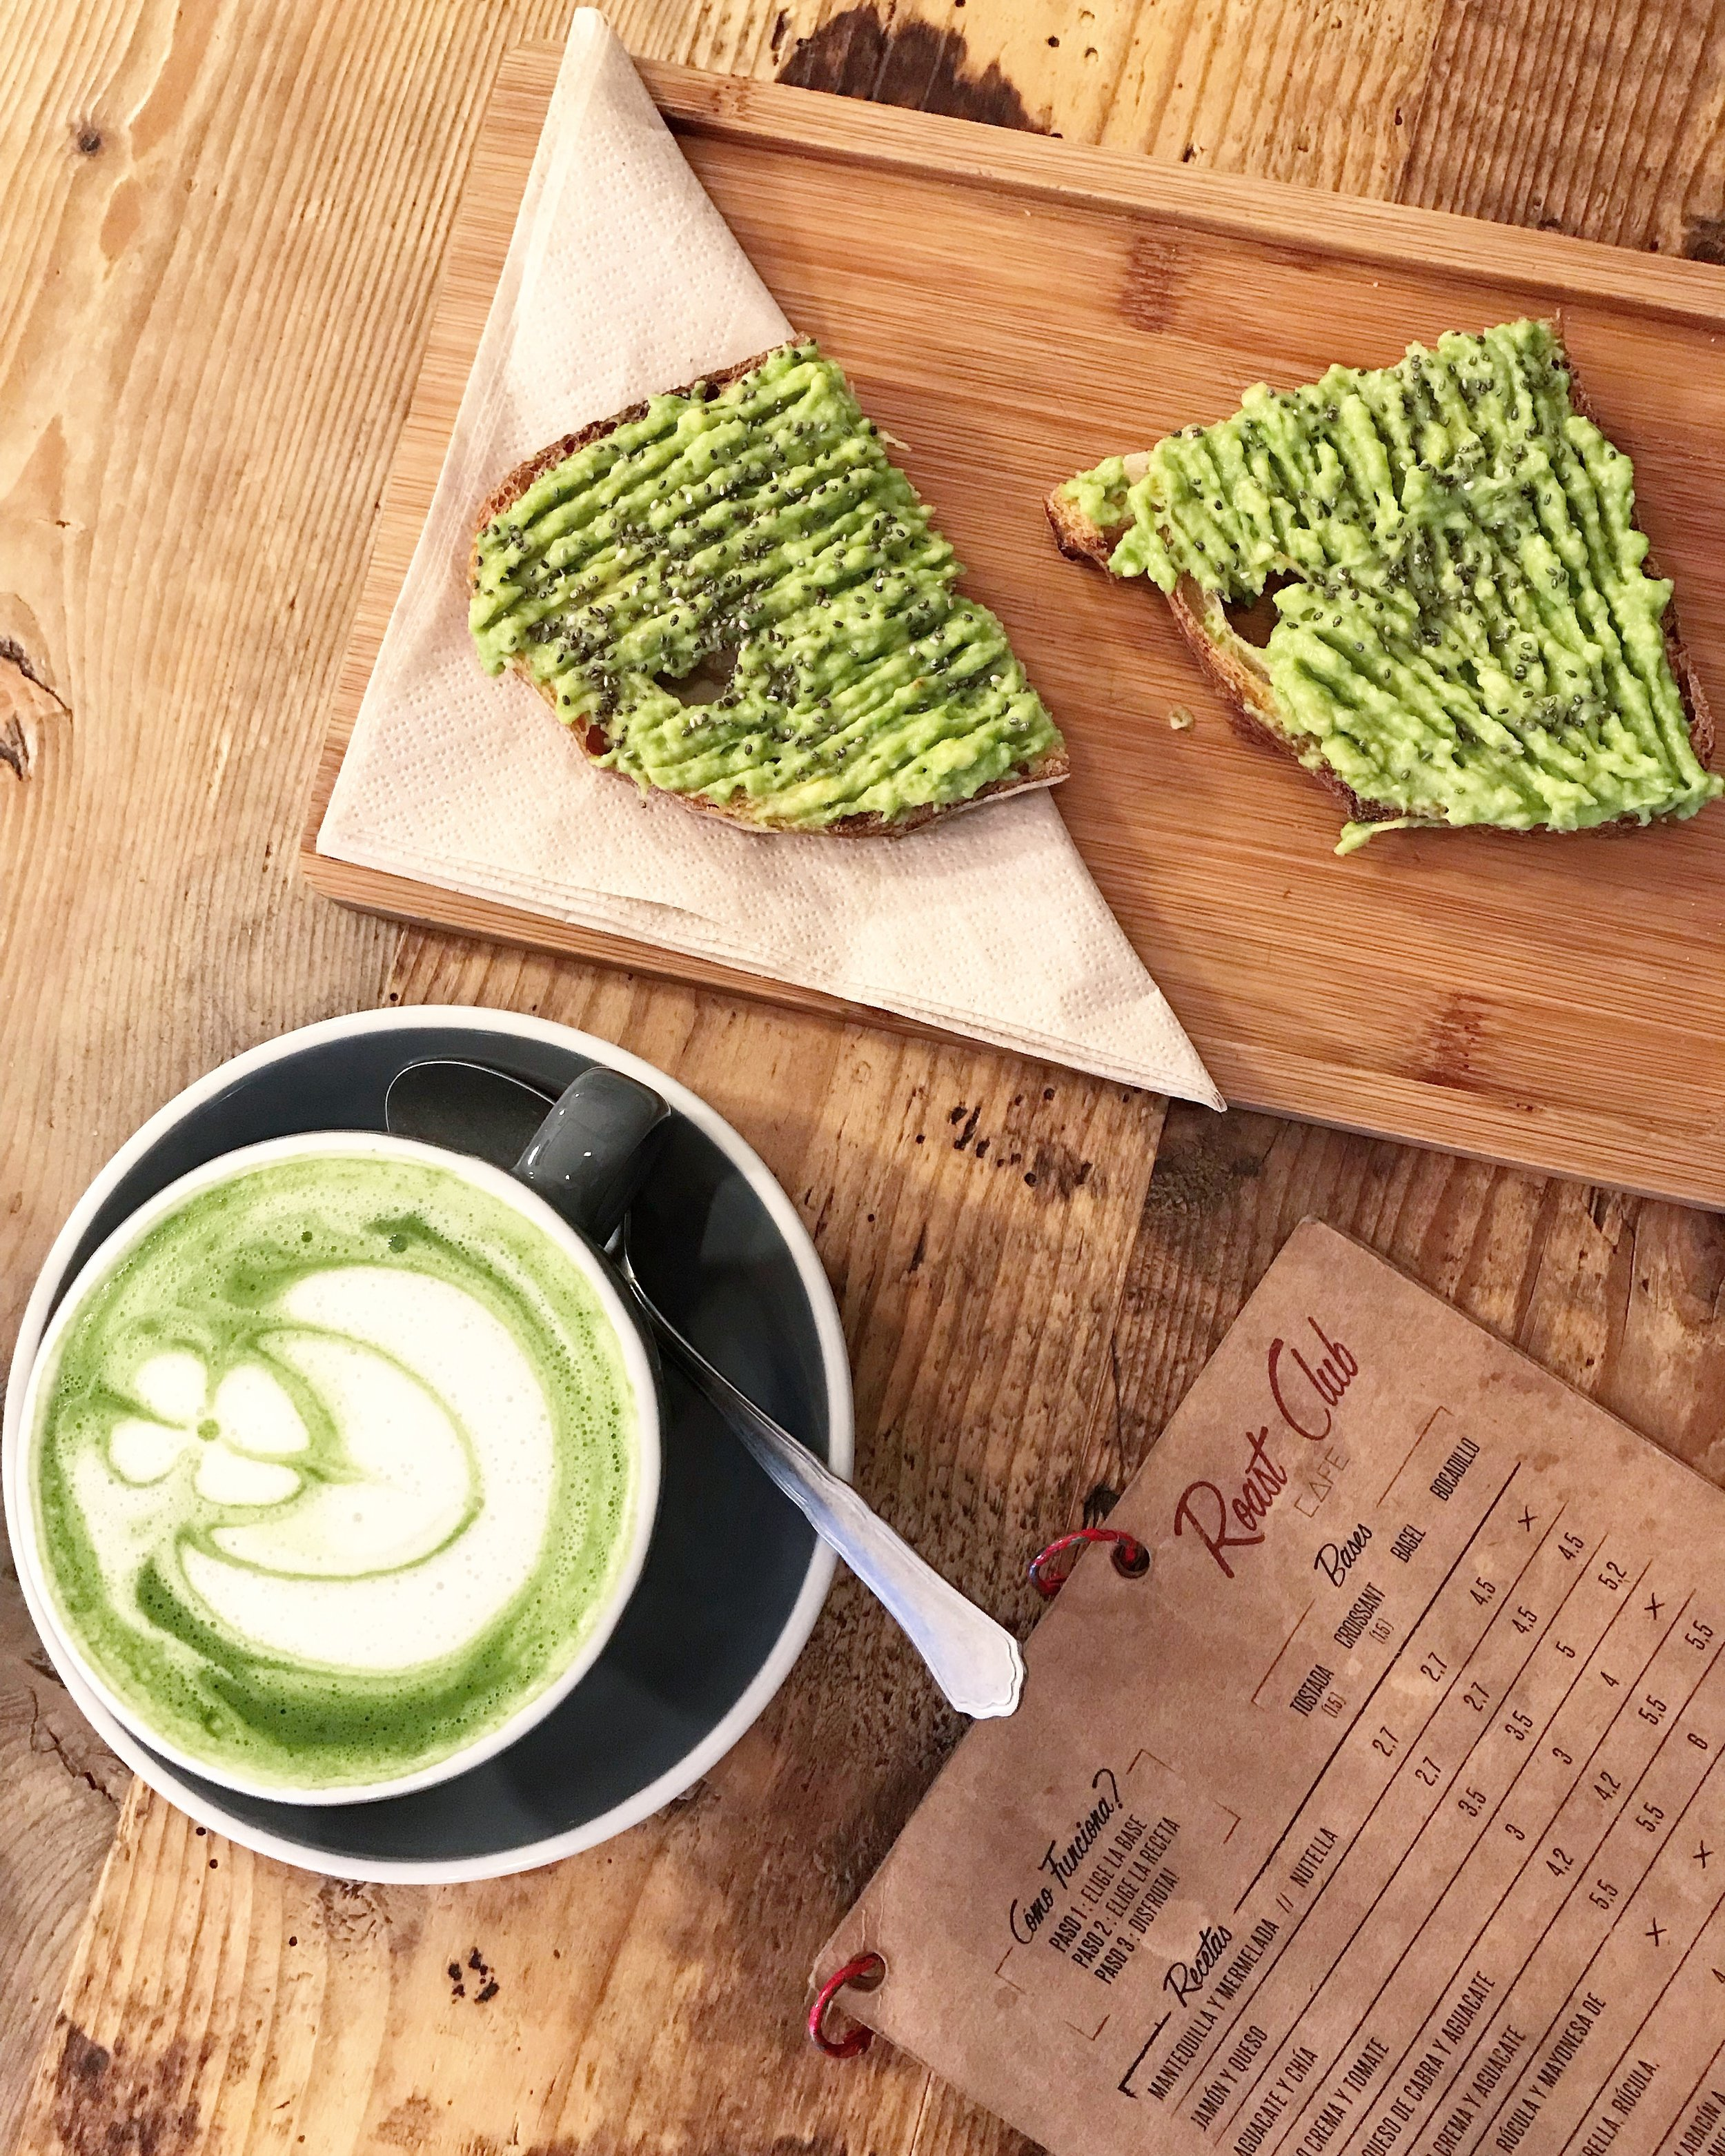 Matcha Latte at Roast Club Cafe Barcelona